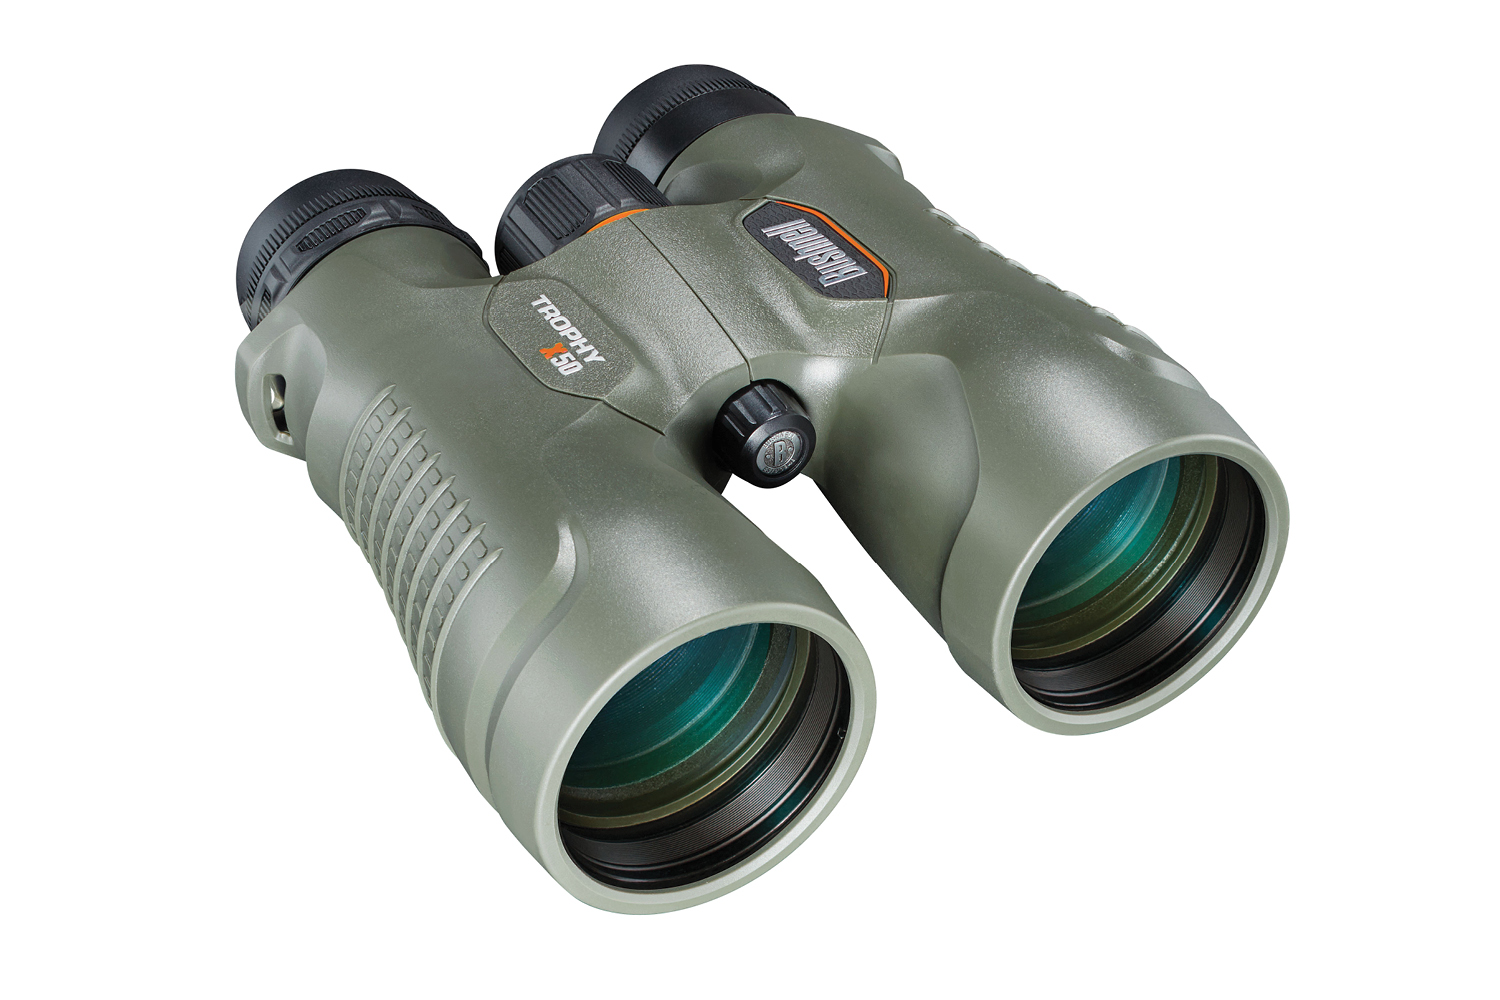 Бинокль Bushnell TROPHY XTREME 8x56 бинокль carl zeiss 8x56 t conquest